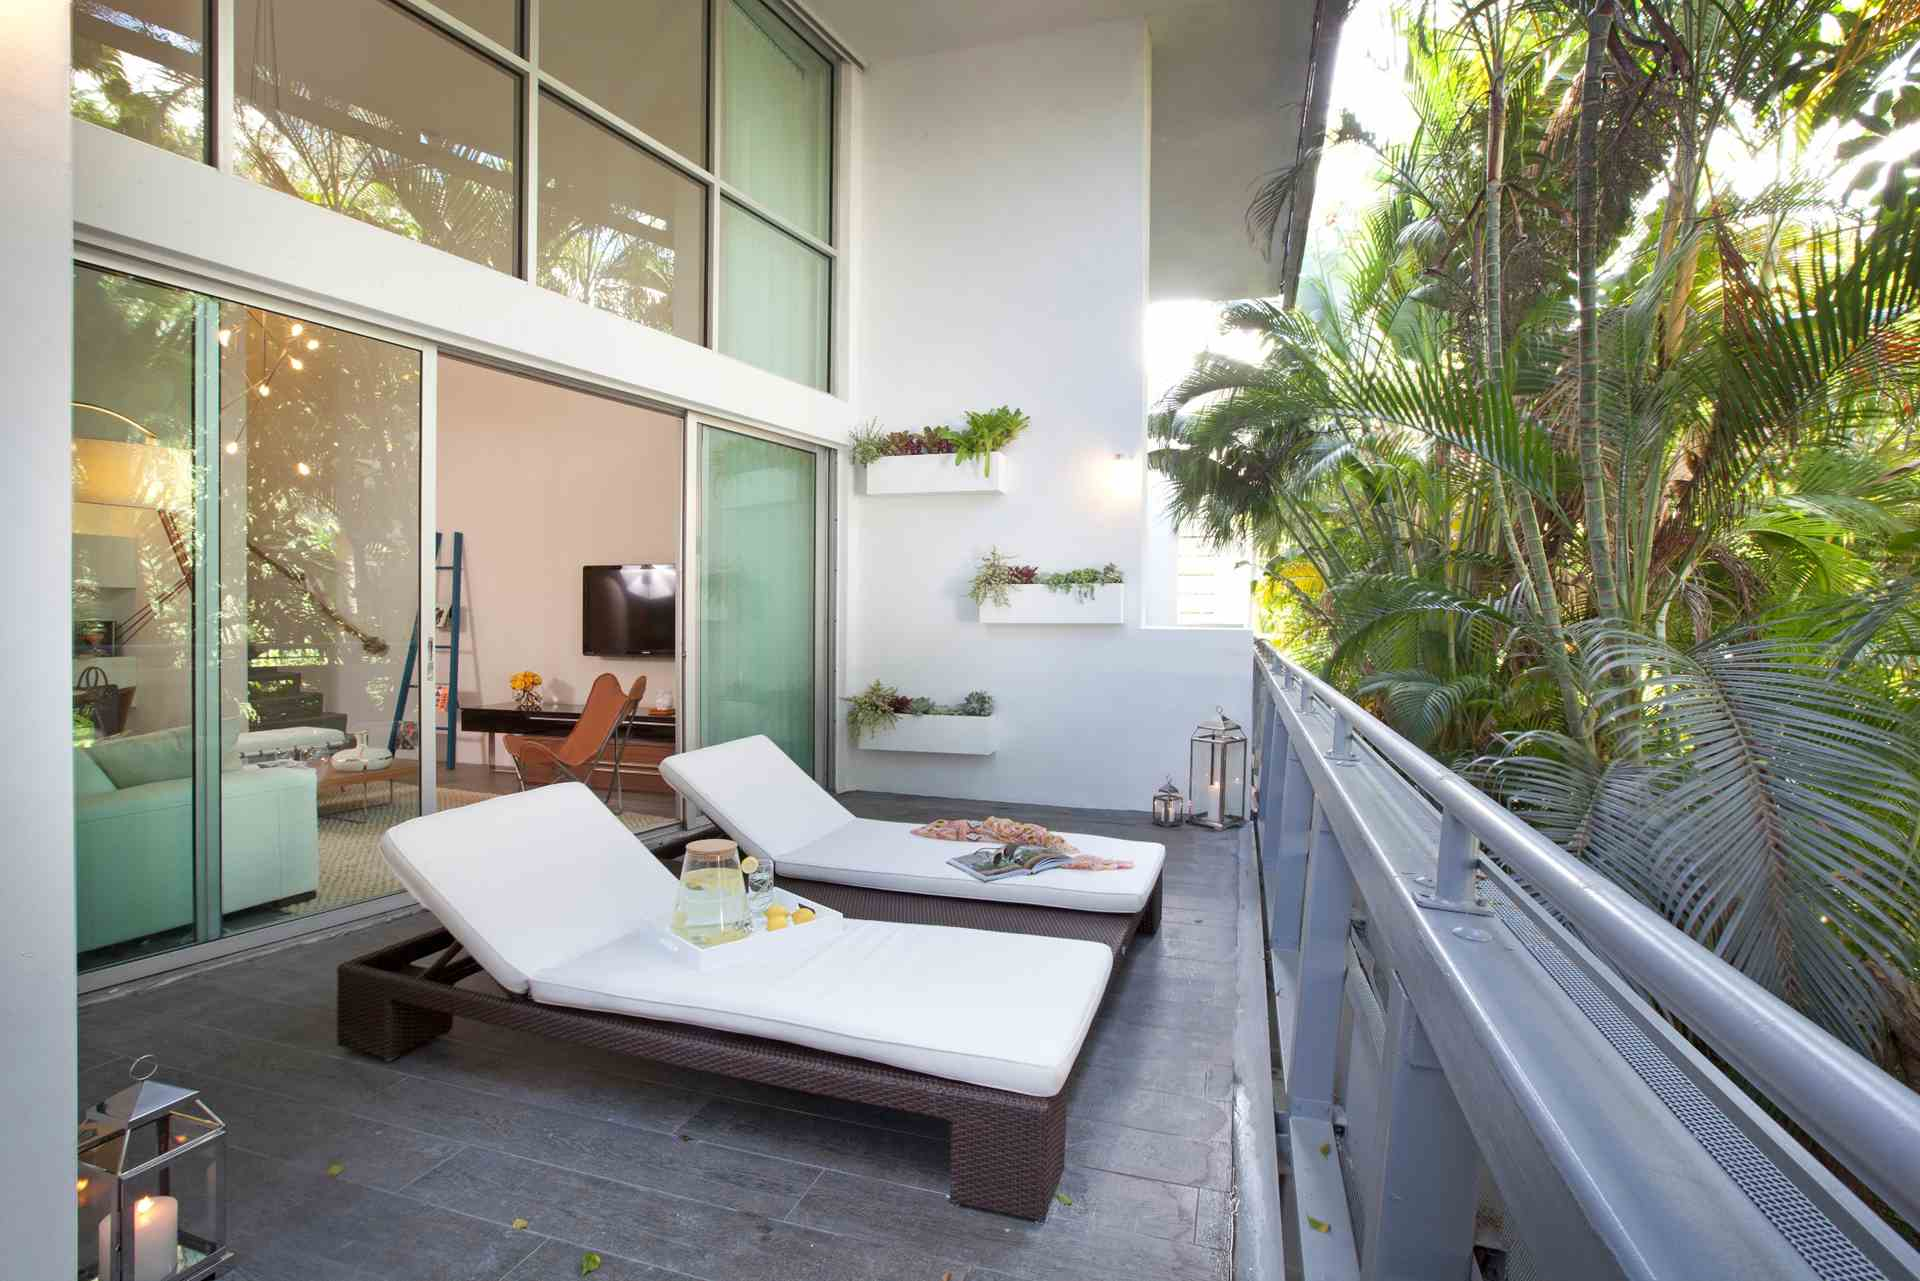 Modern Large Balconies Modern Balconies Interior Design Ideas Sunbeds In The Eco Designed